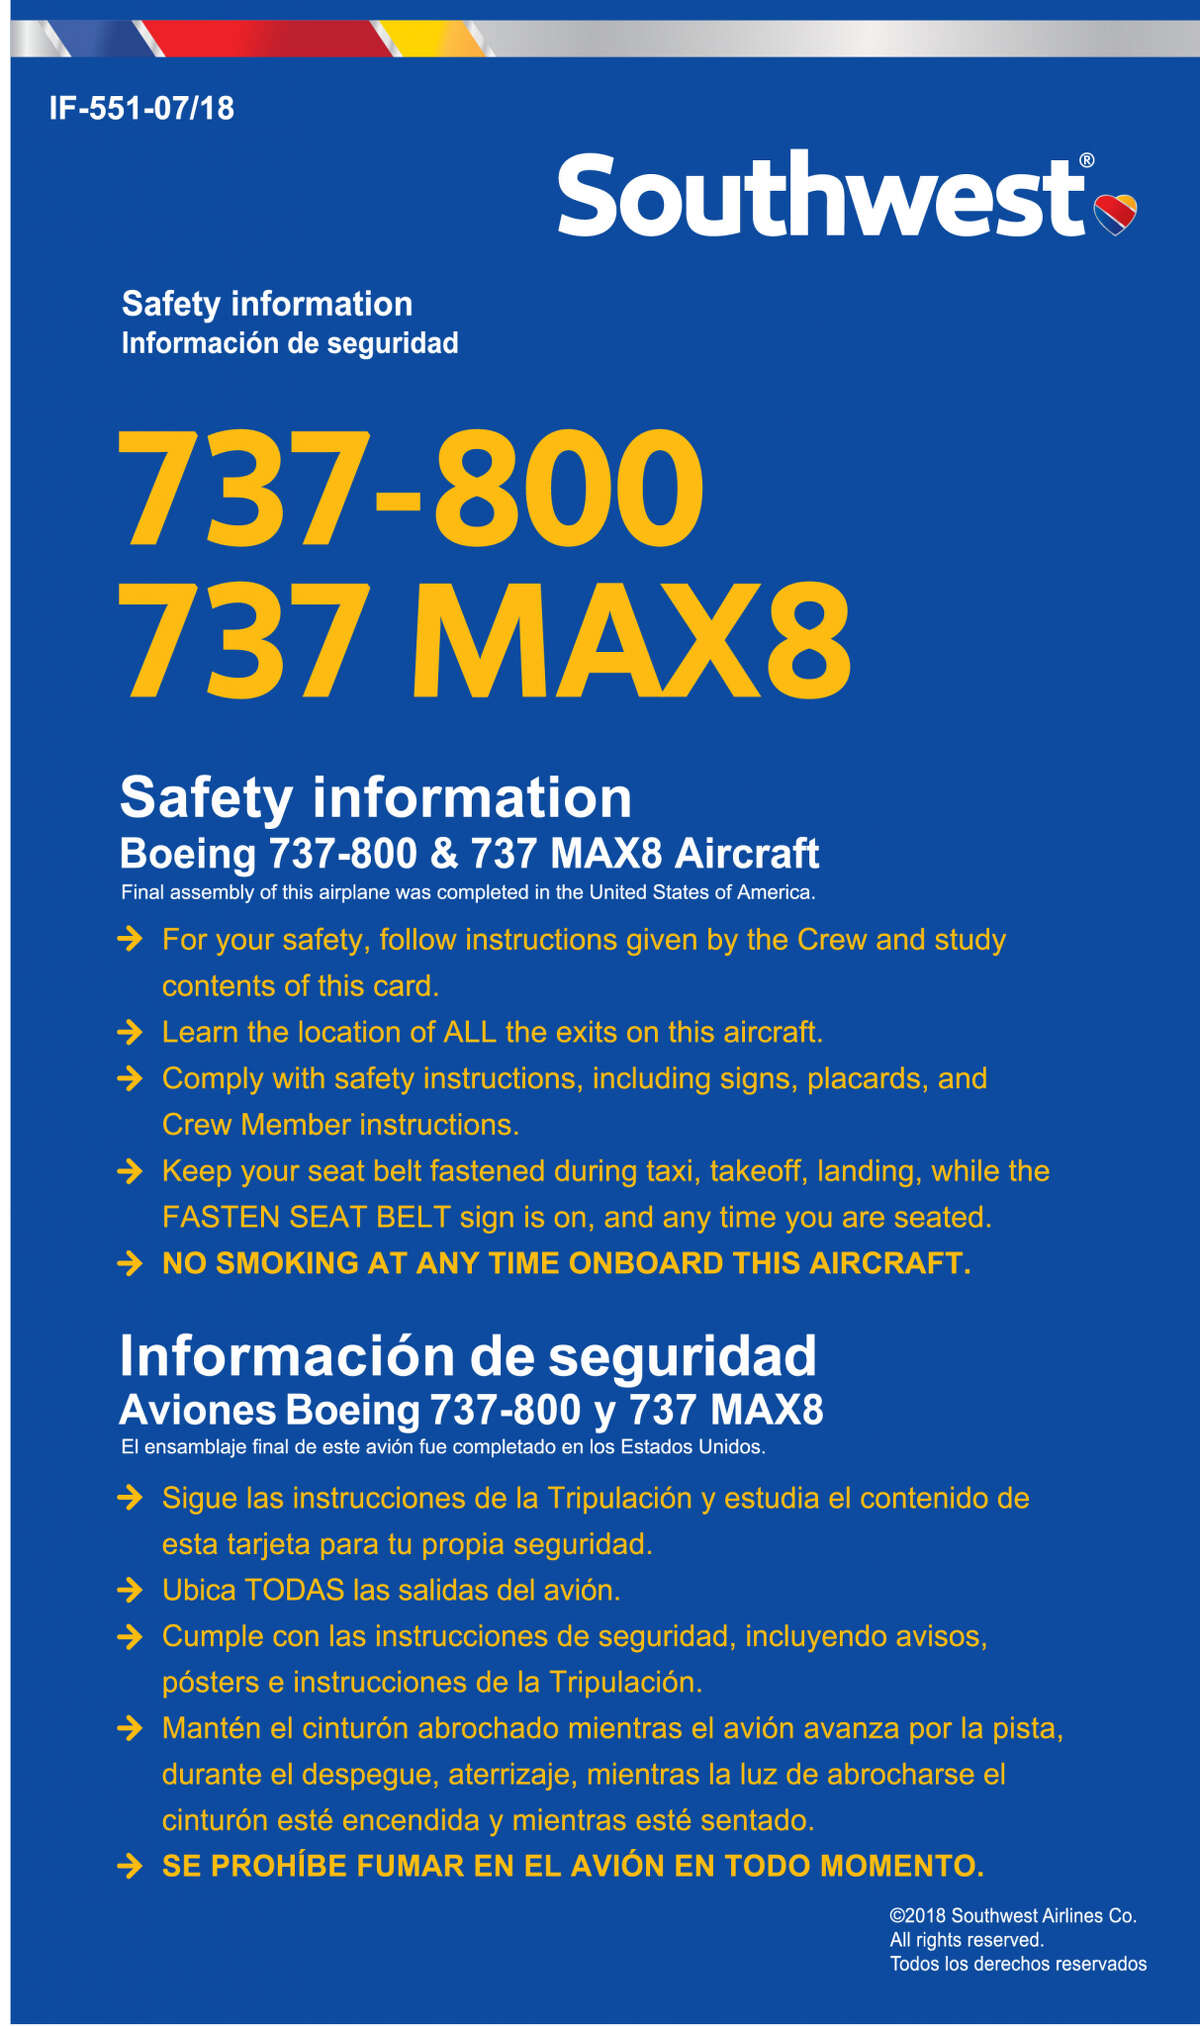 Southwest Airlines uses the same safety card for both 737-800 and MAX 8 jets